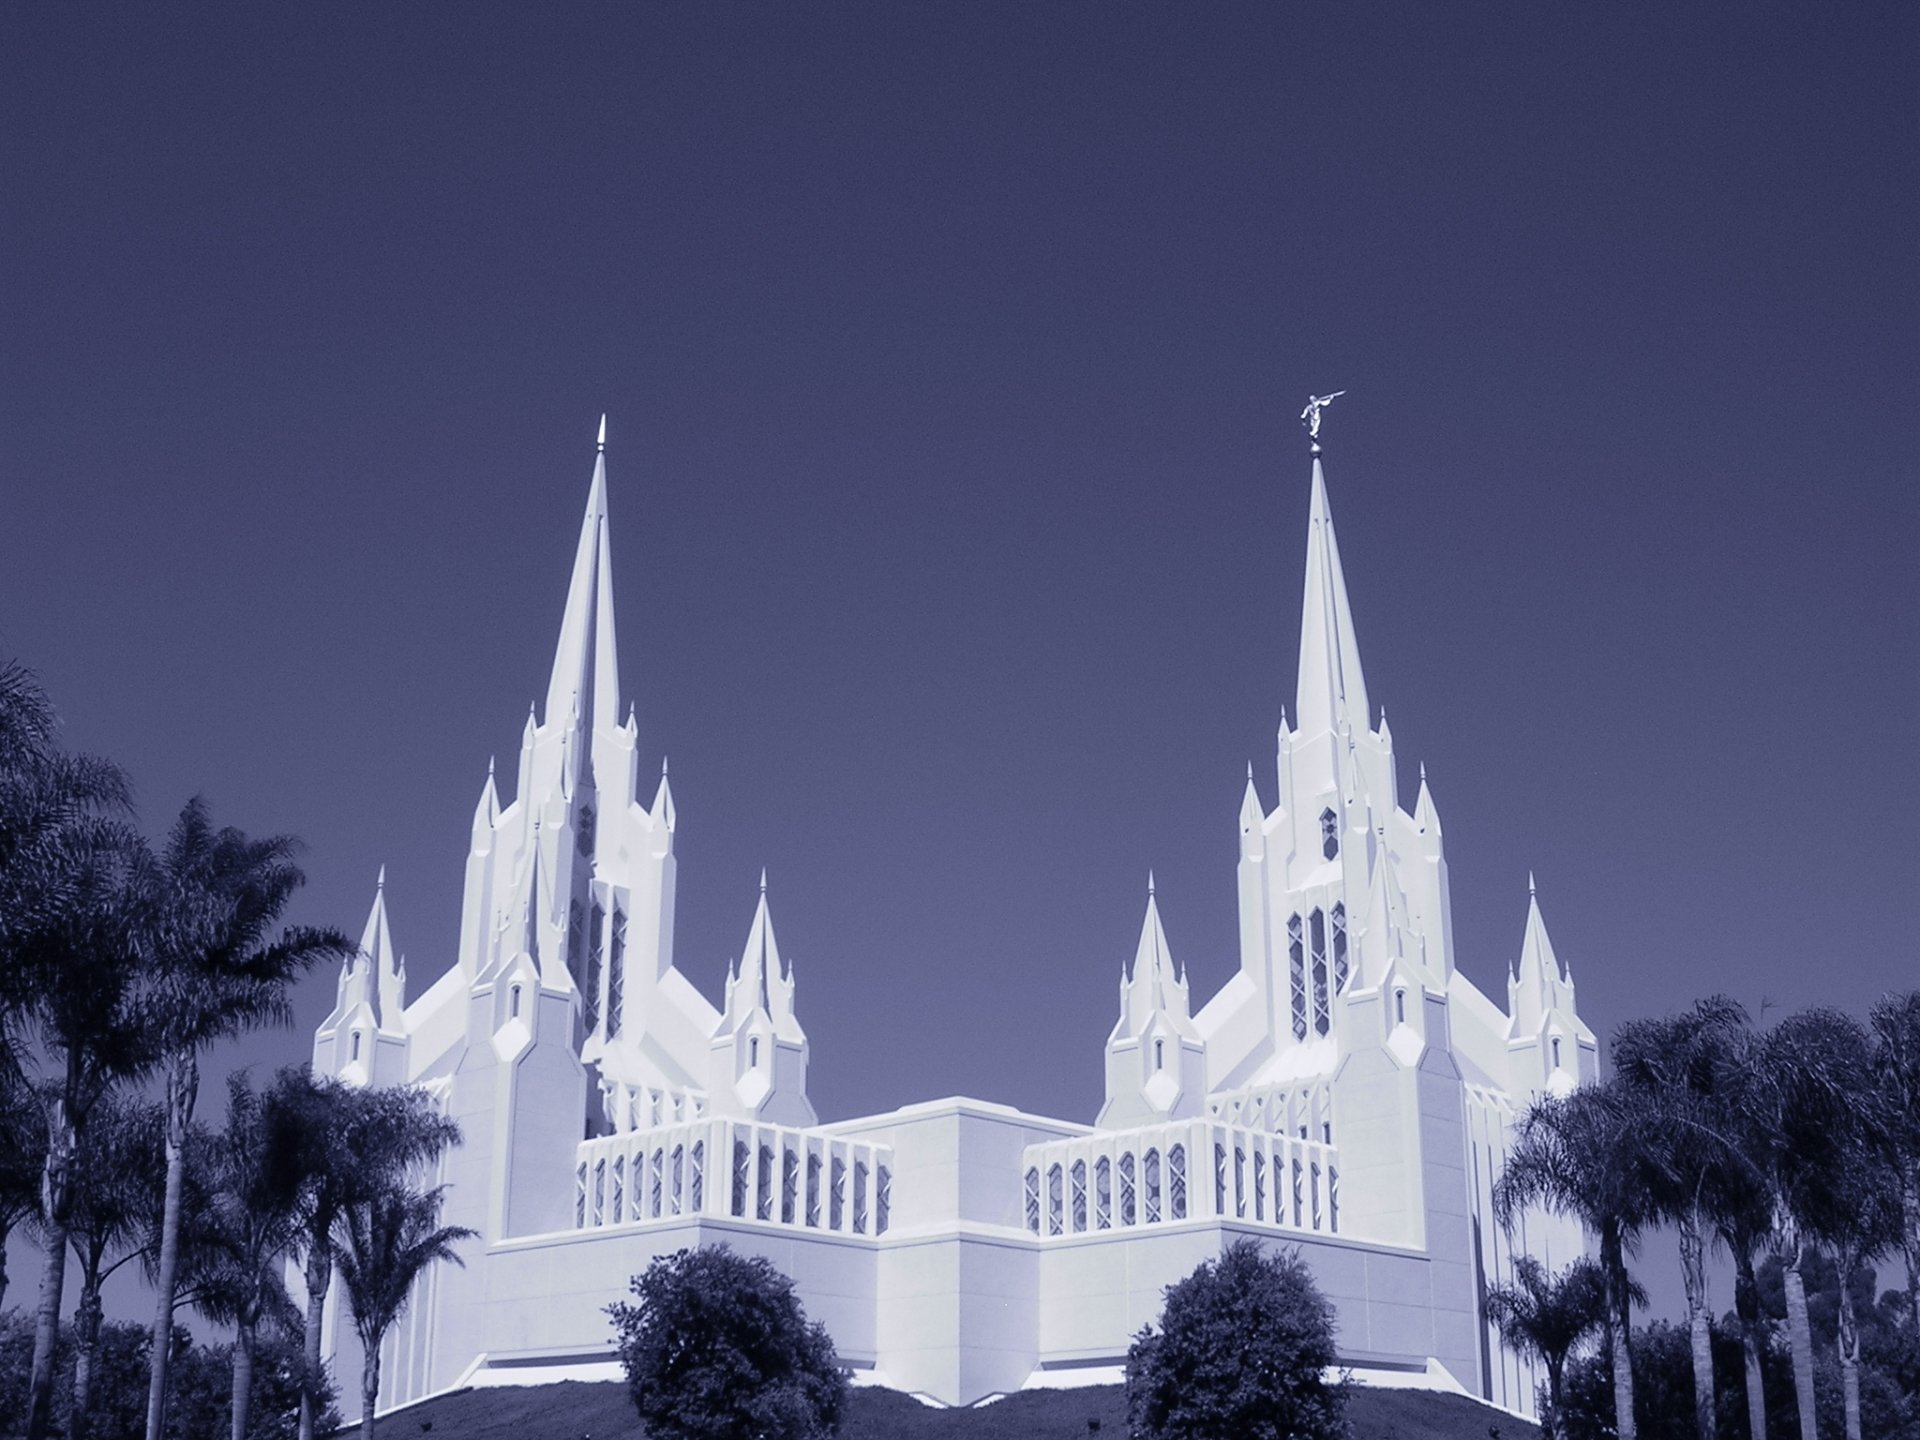 San diego california temple hd wallpaper background image 2048x1536 id 106786 wallpaper - Lds temple wallpaper ...